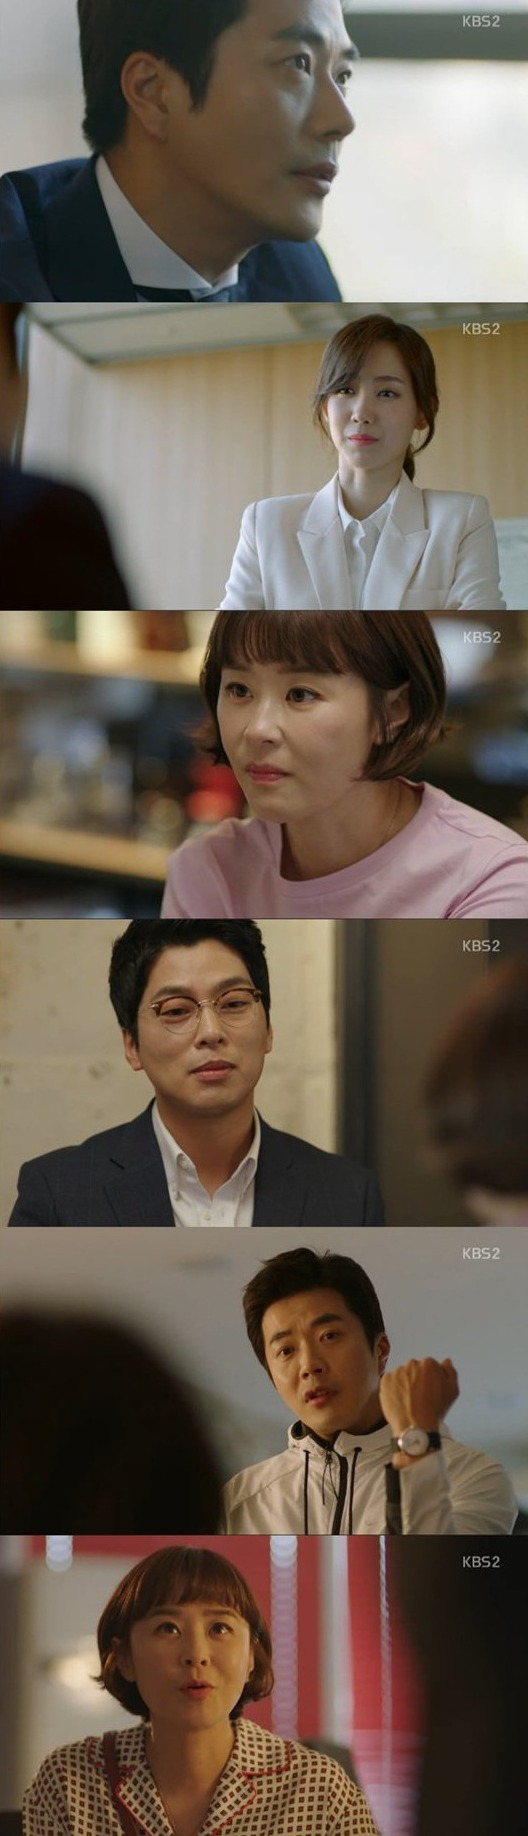 [Spoiler] Added final episode 16 captures for the Korean drama 'Mystery Queen'